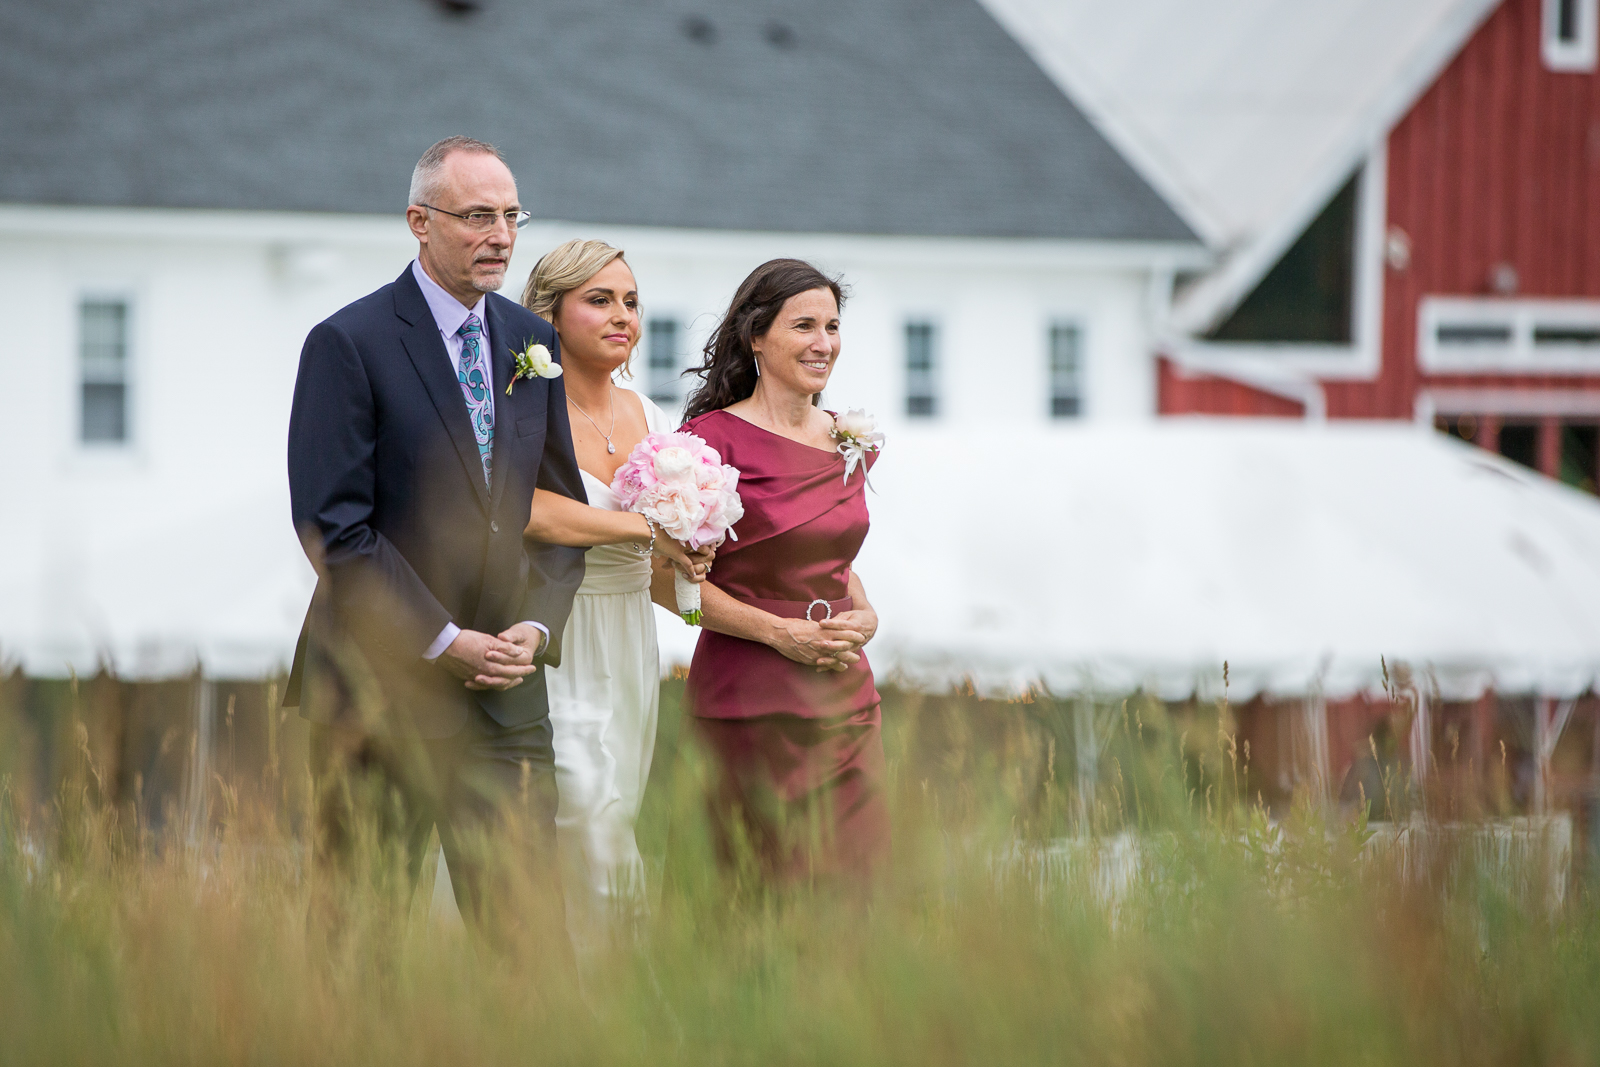 Four_Wings_Photography_Wedding_Red_Barn_at_Hampshire_College-25.jpg